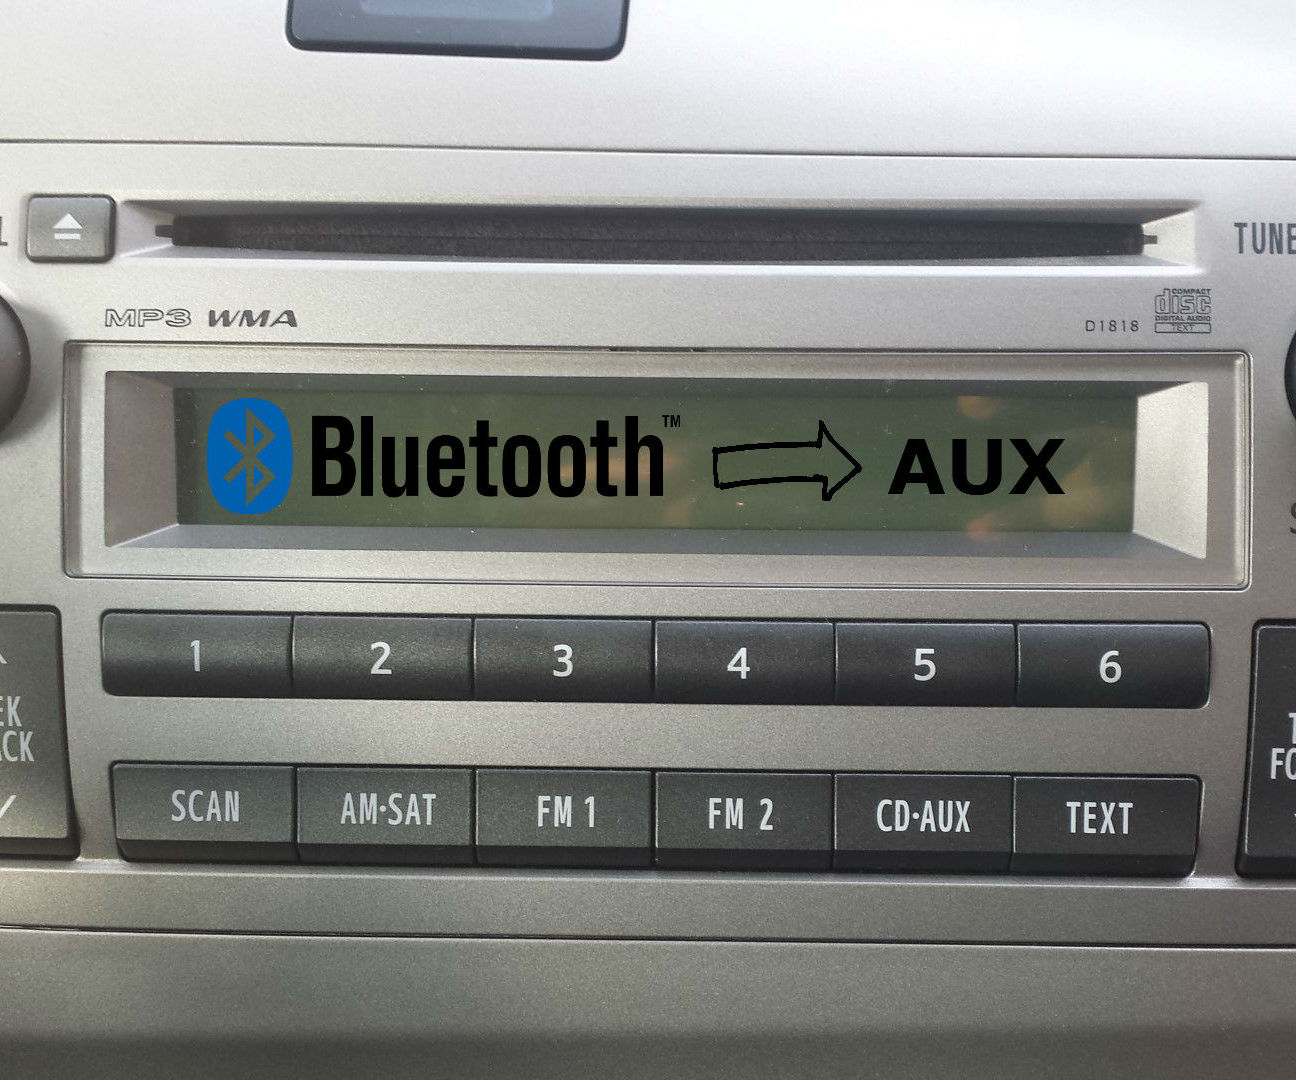 Adding Bluetooth support to your car